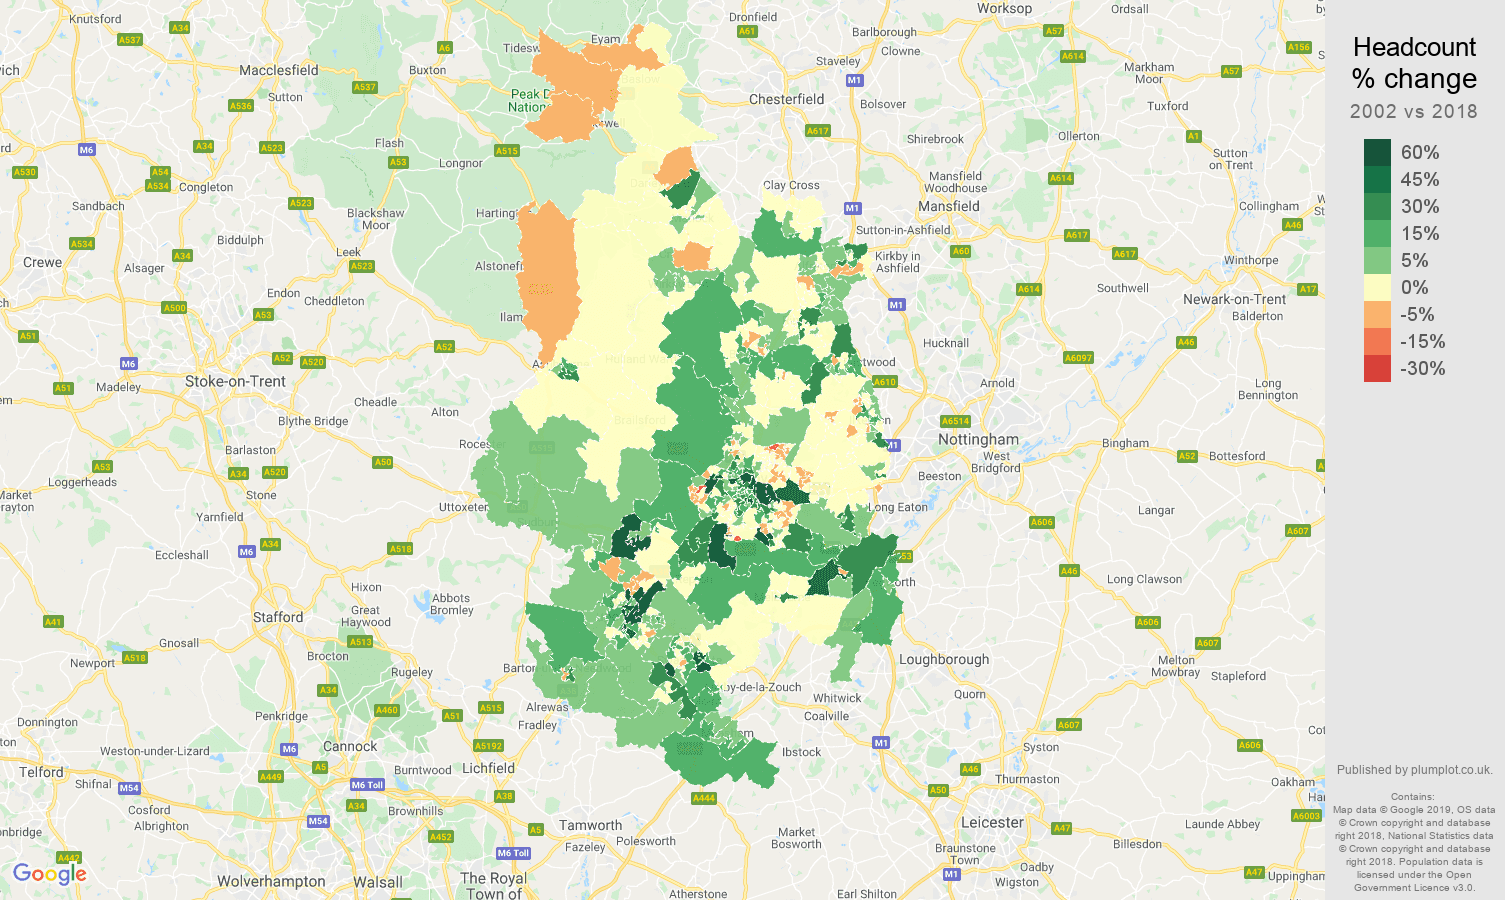 Derby headcount change map